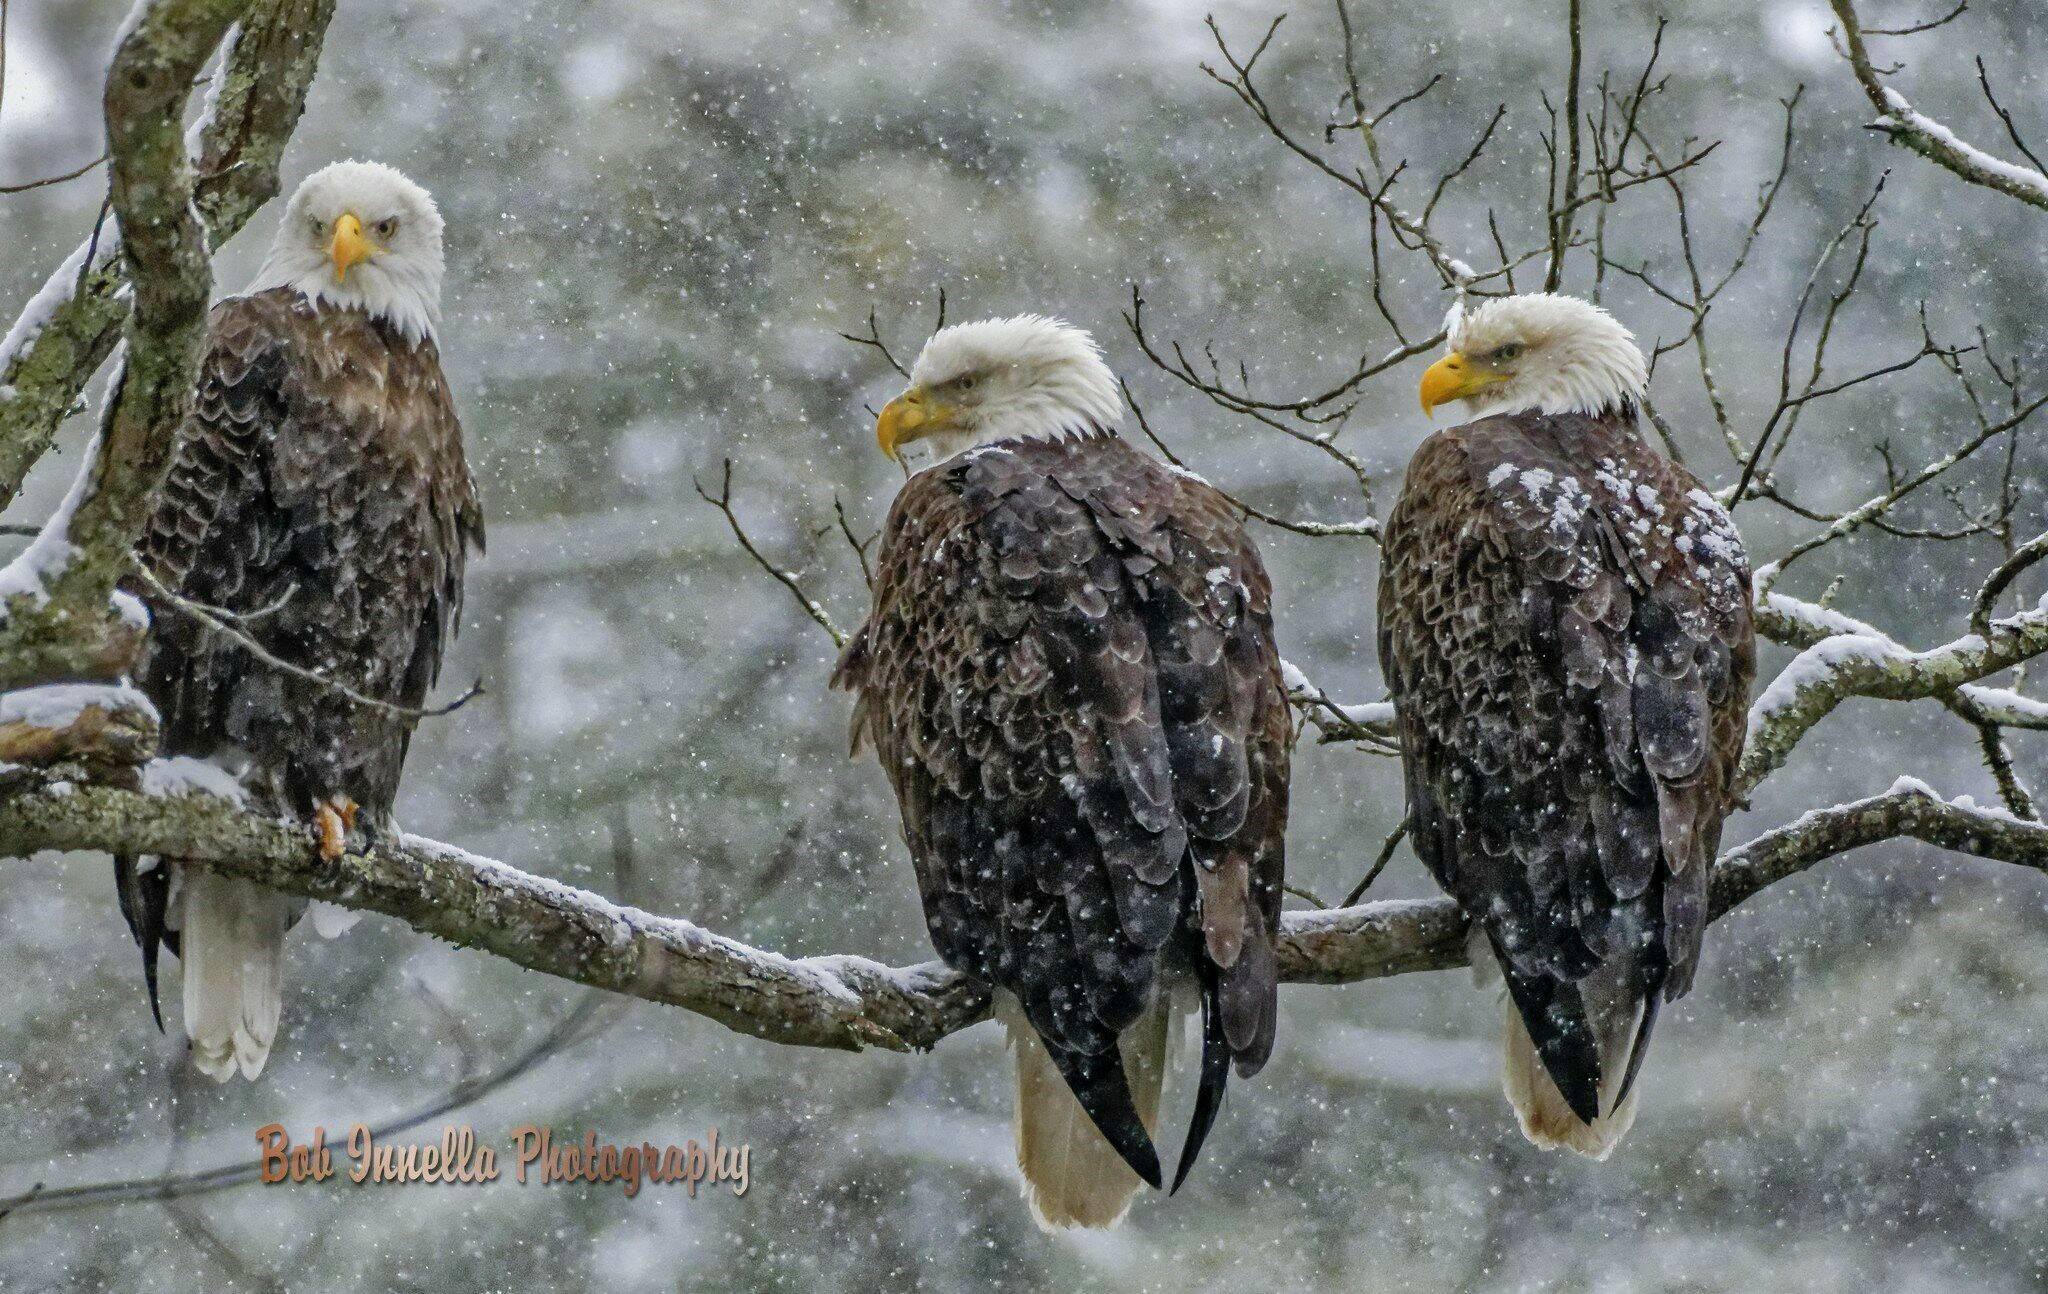 3 Eagles In Heavy Snowstorm - 3 Bald Eagles in Heavy Snowstorm, Rio, Ny by Buckmaster